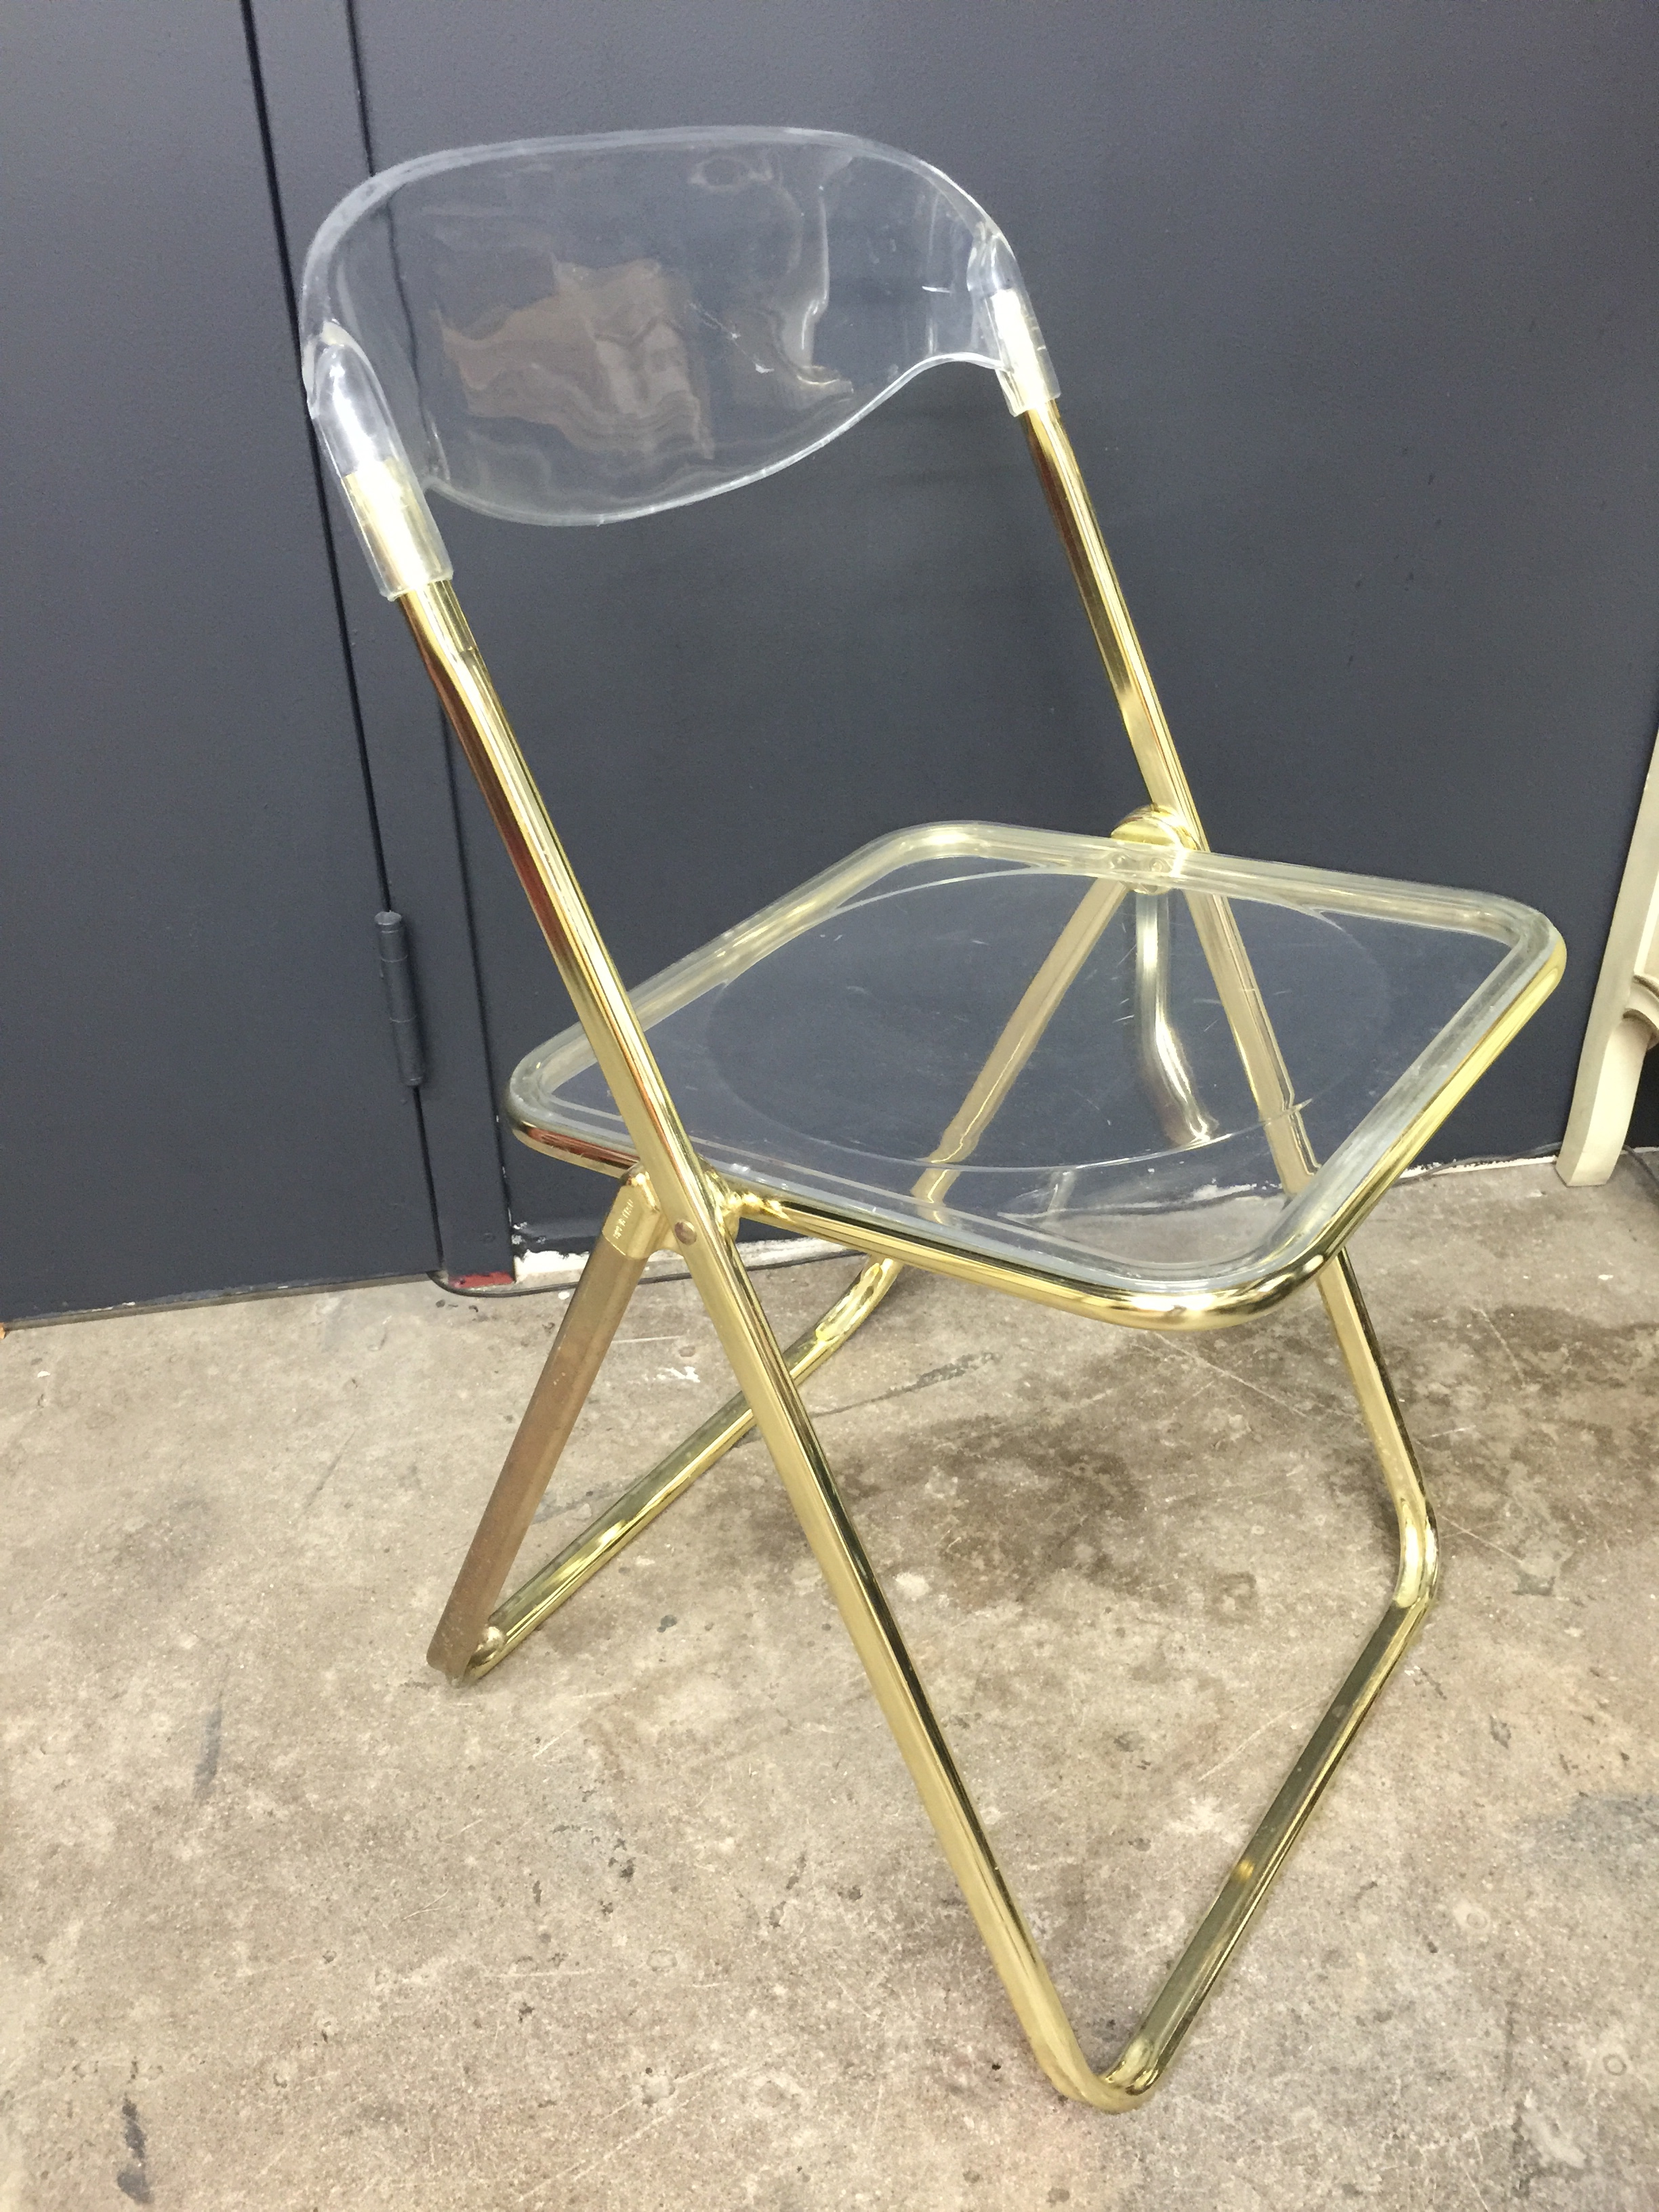 Lucite Folding Chairs Brevattato Lucite And Gold Folding Chair The Savoy Flea